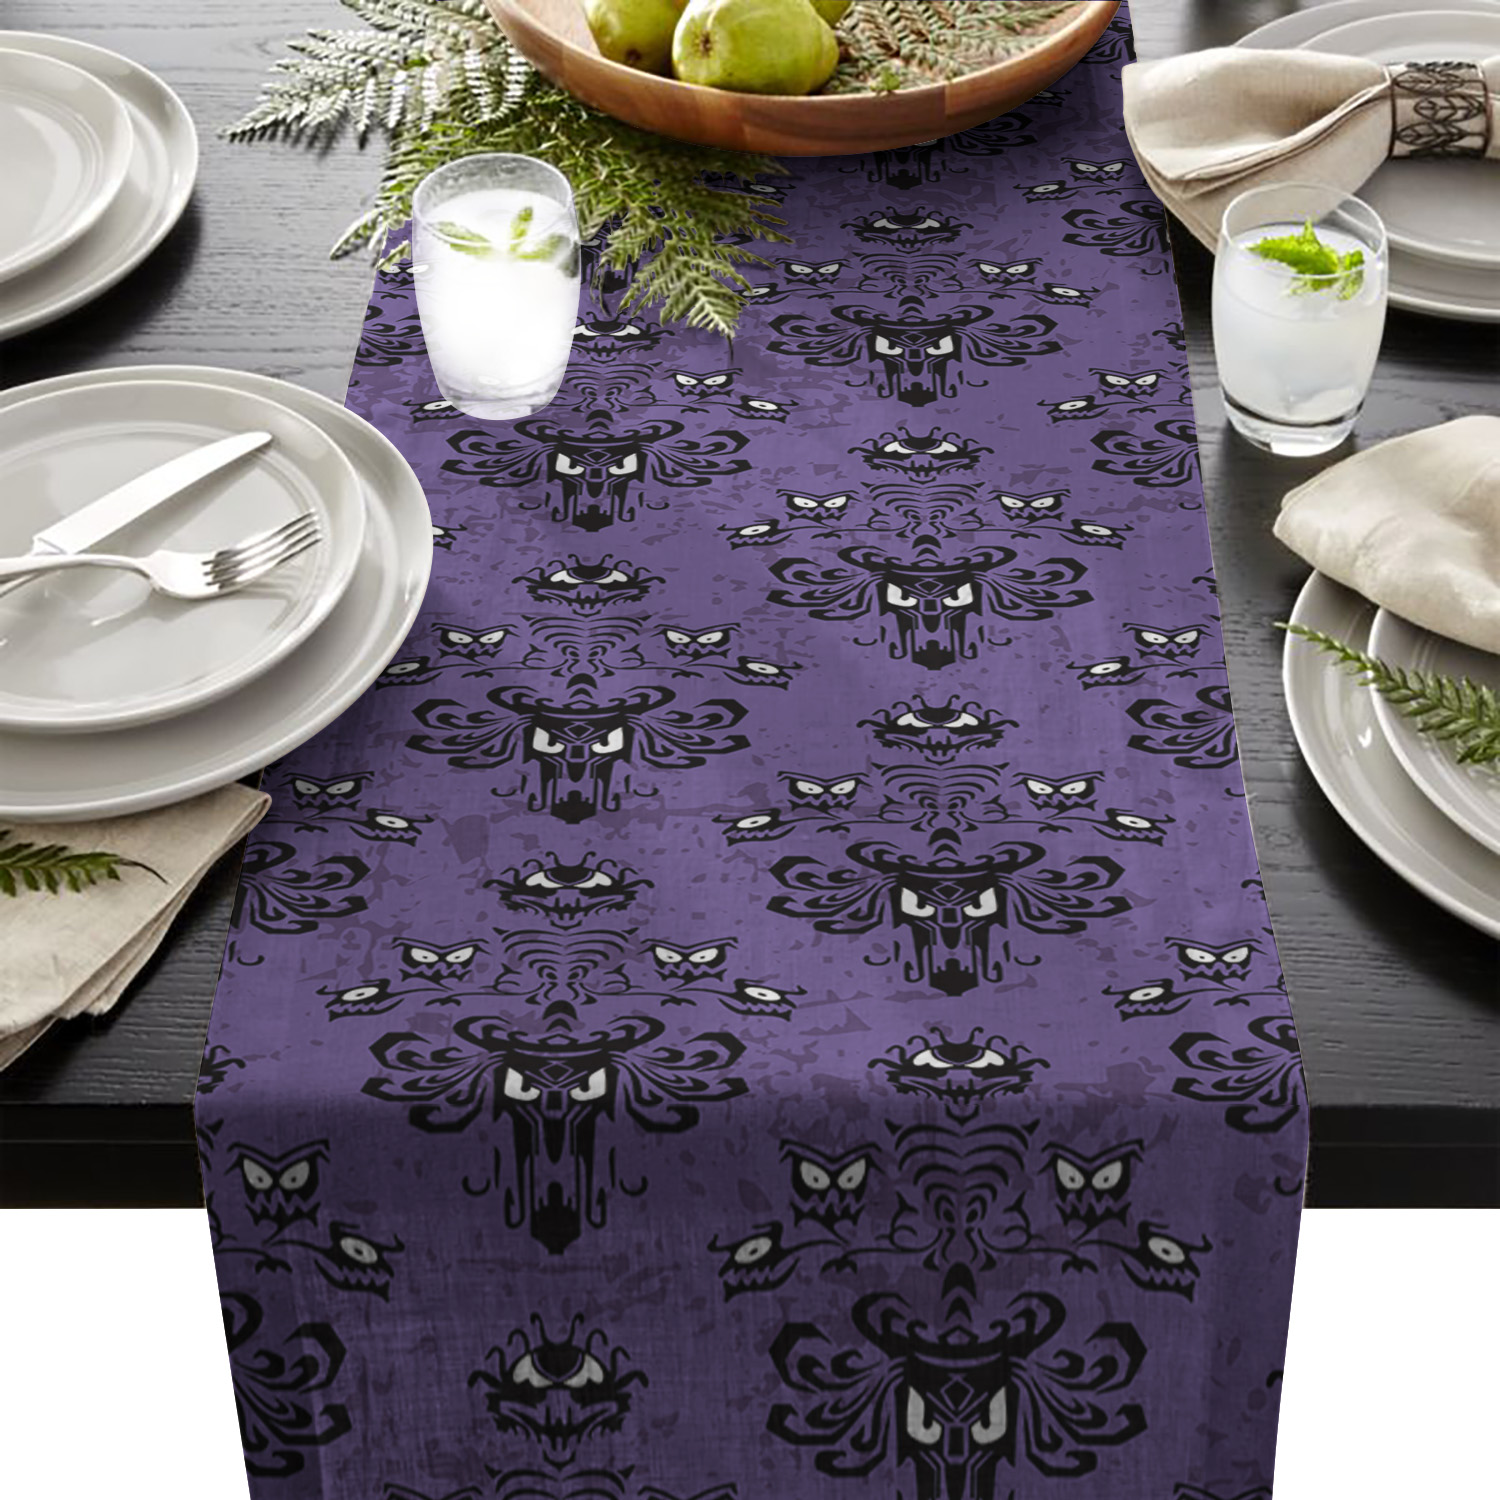 Around The World Table Runner 183 cm Global Travel Party Tableware Decorations